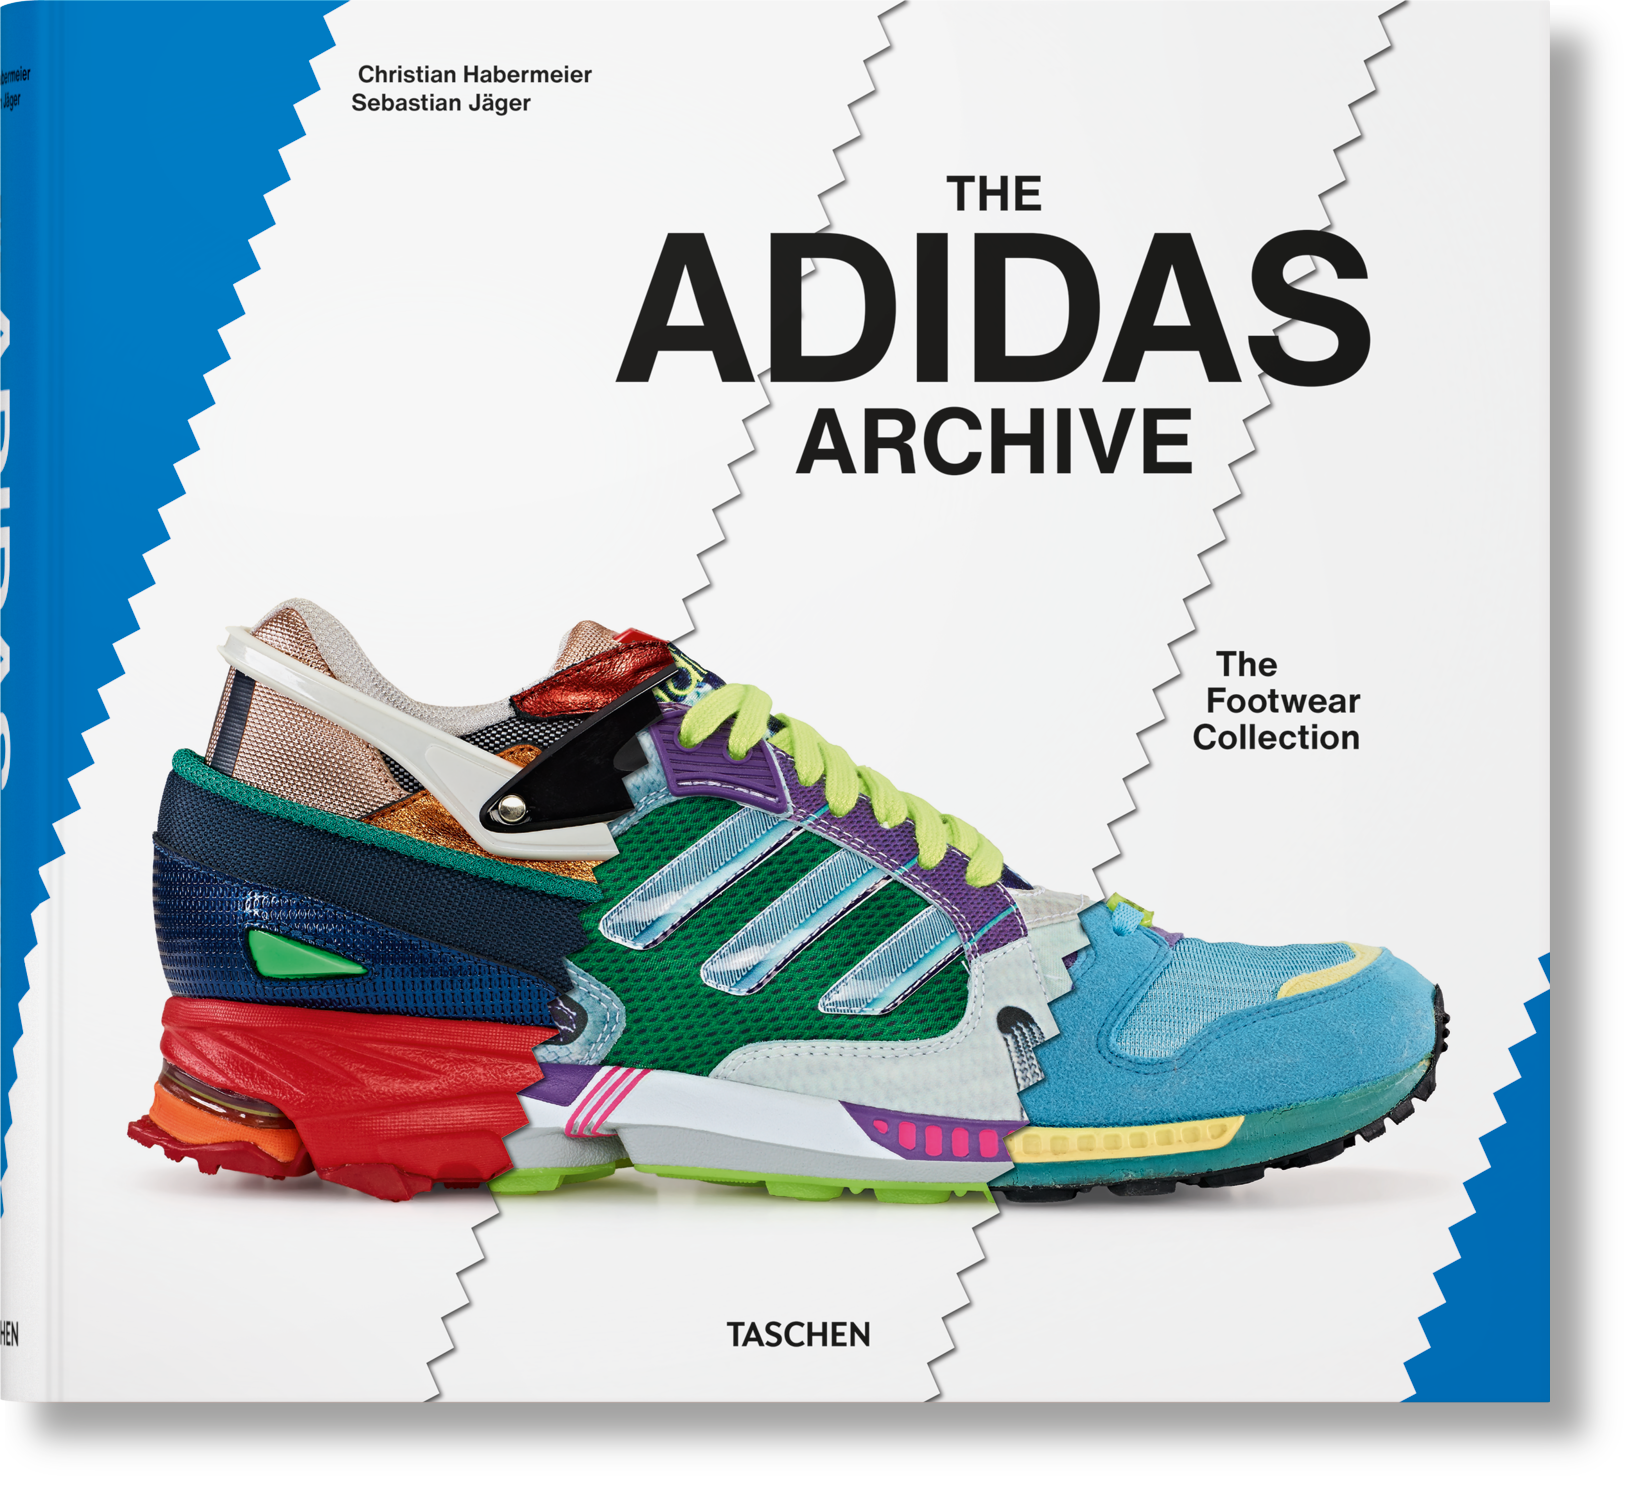 The adidas Archive. The Footwear Collection - Habermeier Christian